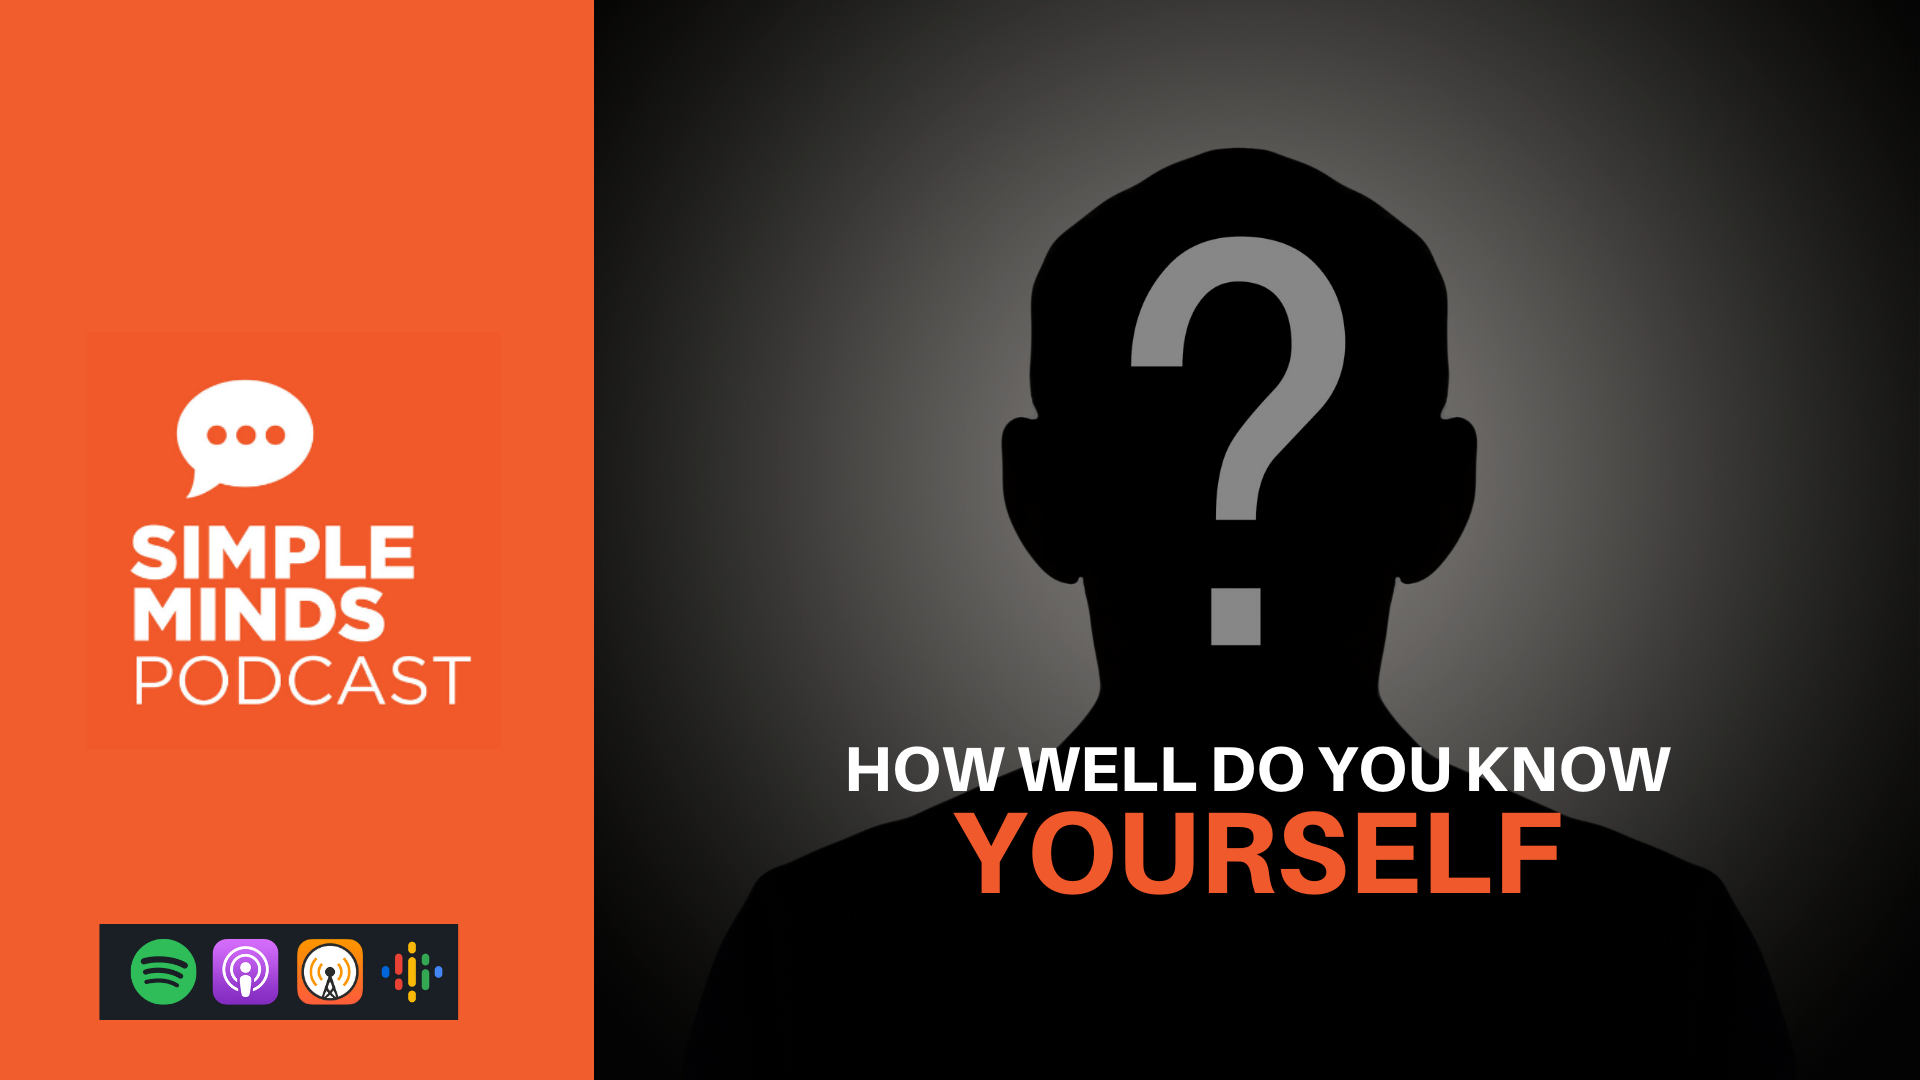 How well do you know yourself? Ready to find out?